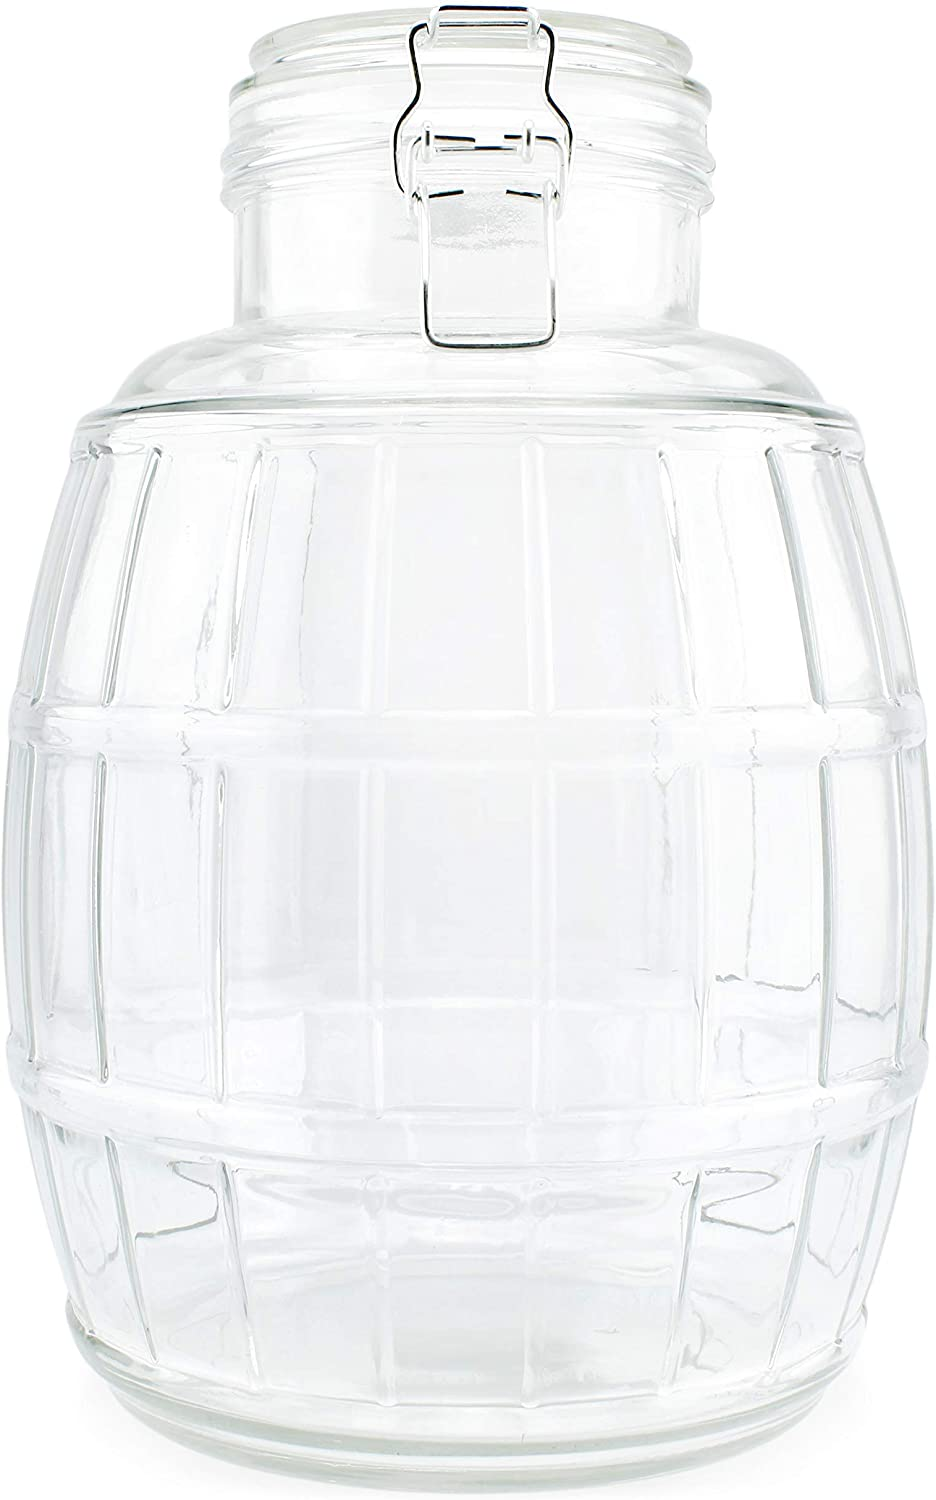 Darware Gallon Glass Barrel Jar; Clamp-Top Barrel-Shaped Canister for Food and Household Storage